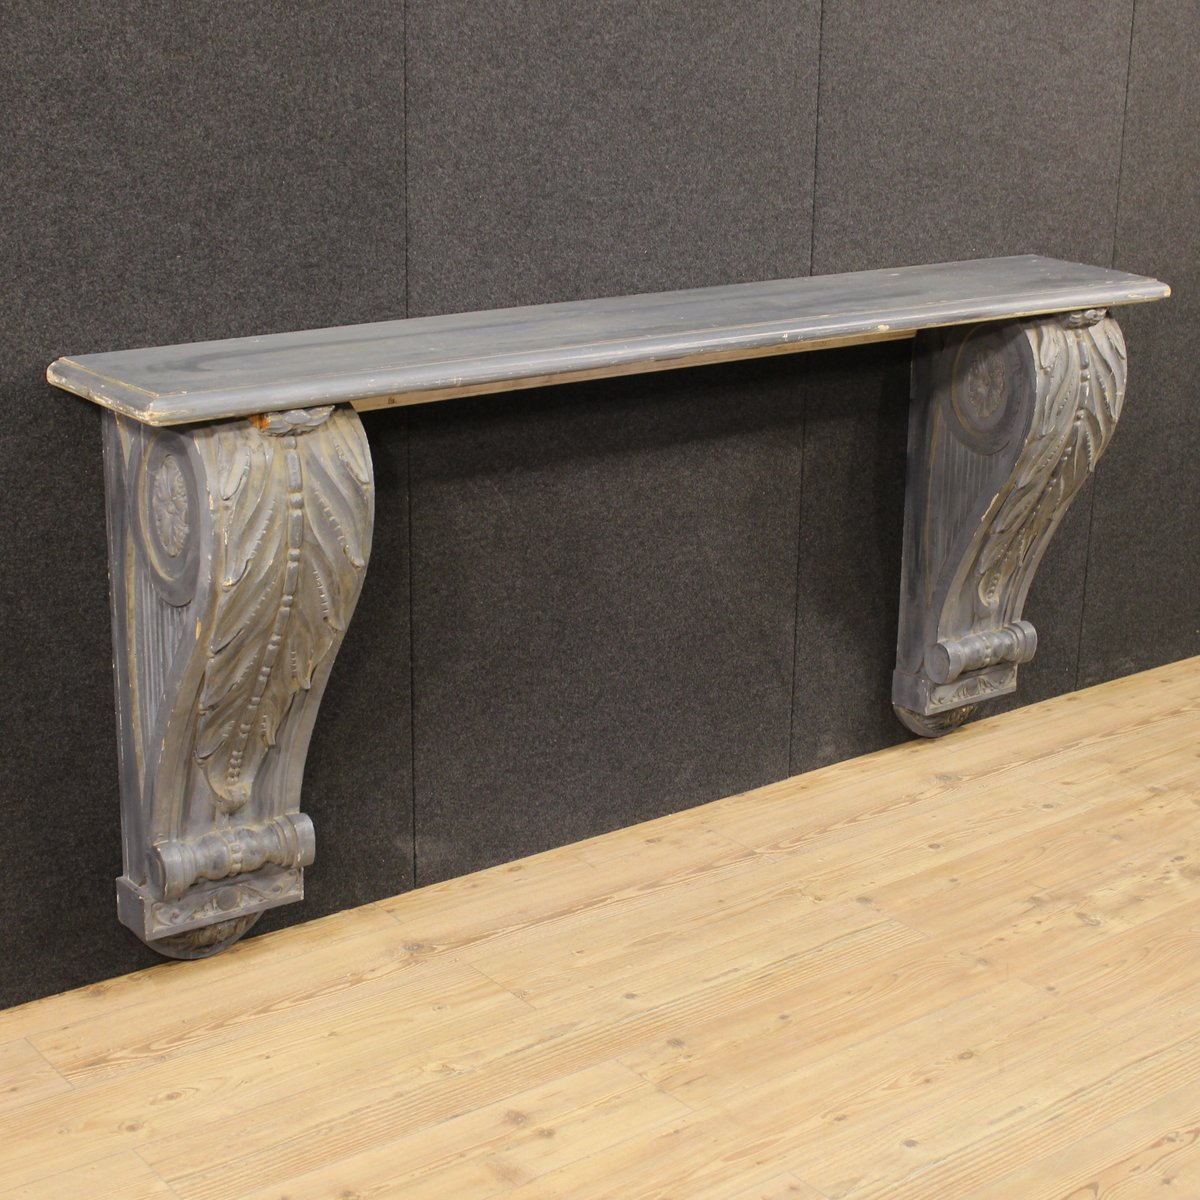 French lacquered and carved wood console table 1950s for sale at french lacquered and carved wood console table 1950s geotapseo Gallery